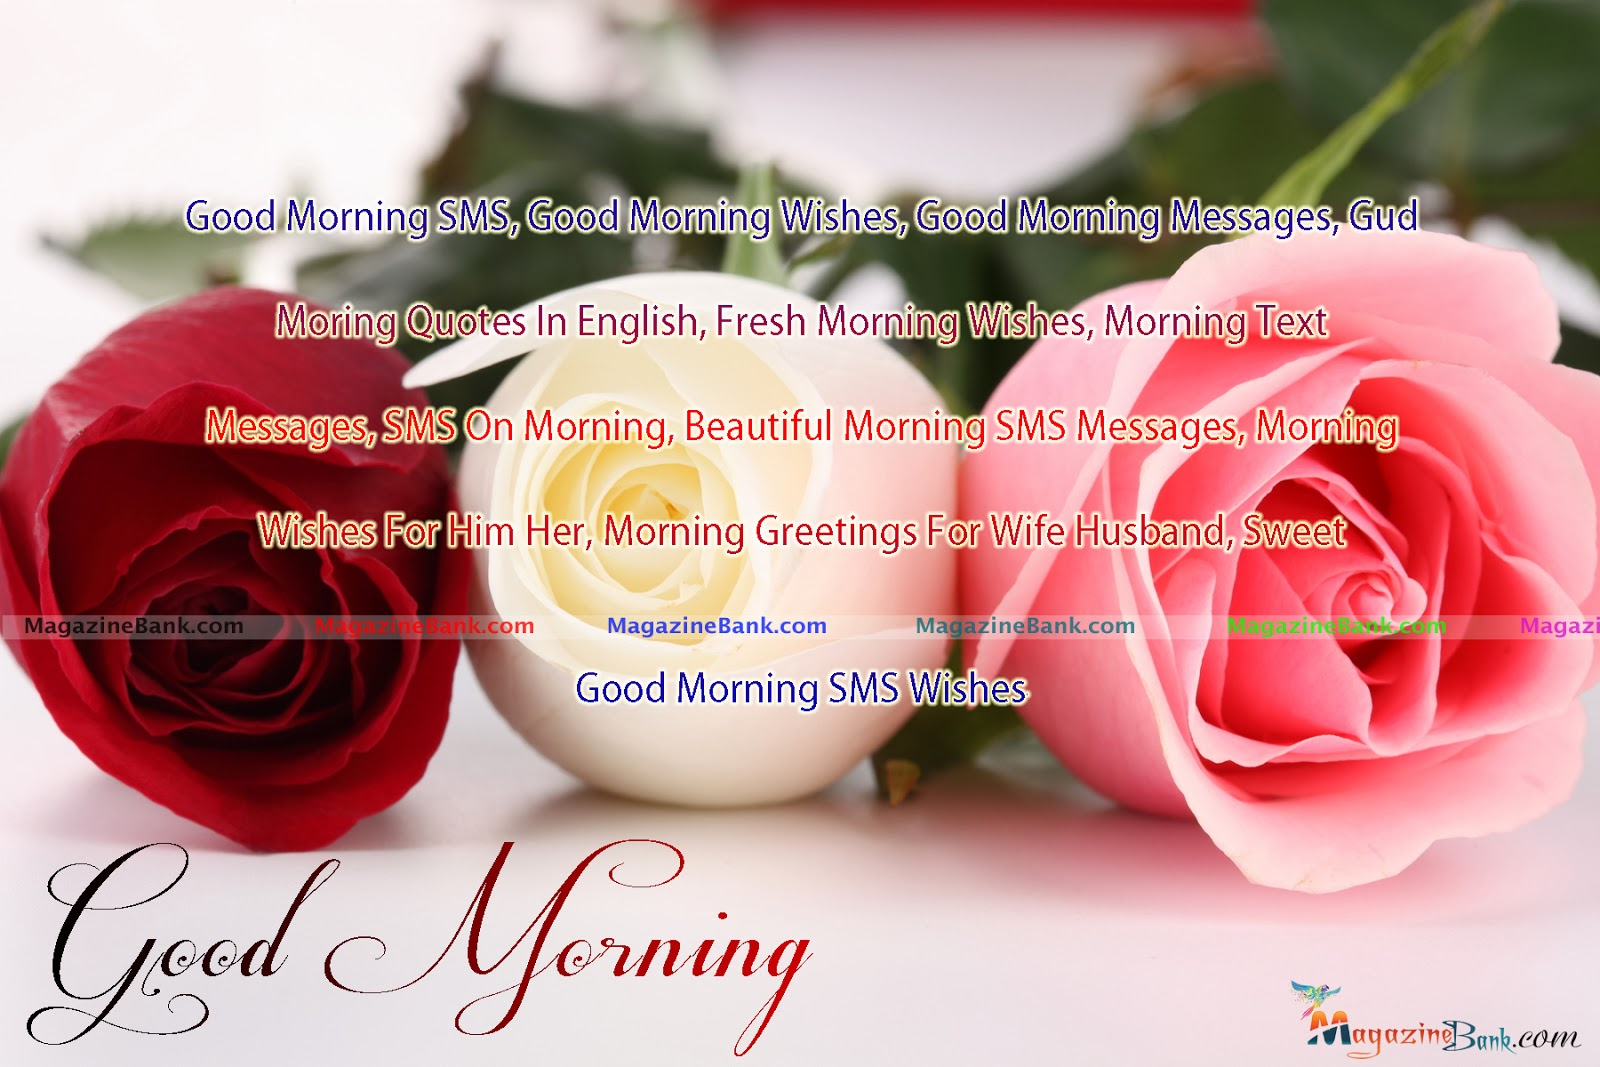 Good Morning Love Msg Wallpaper : Love SMS In Hindi Messages English In Urdu In Marathi ...